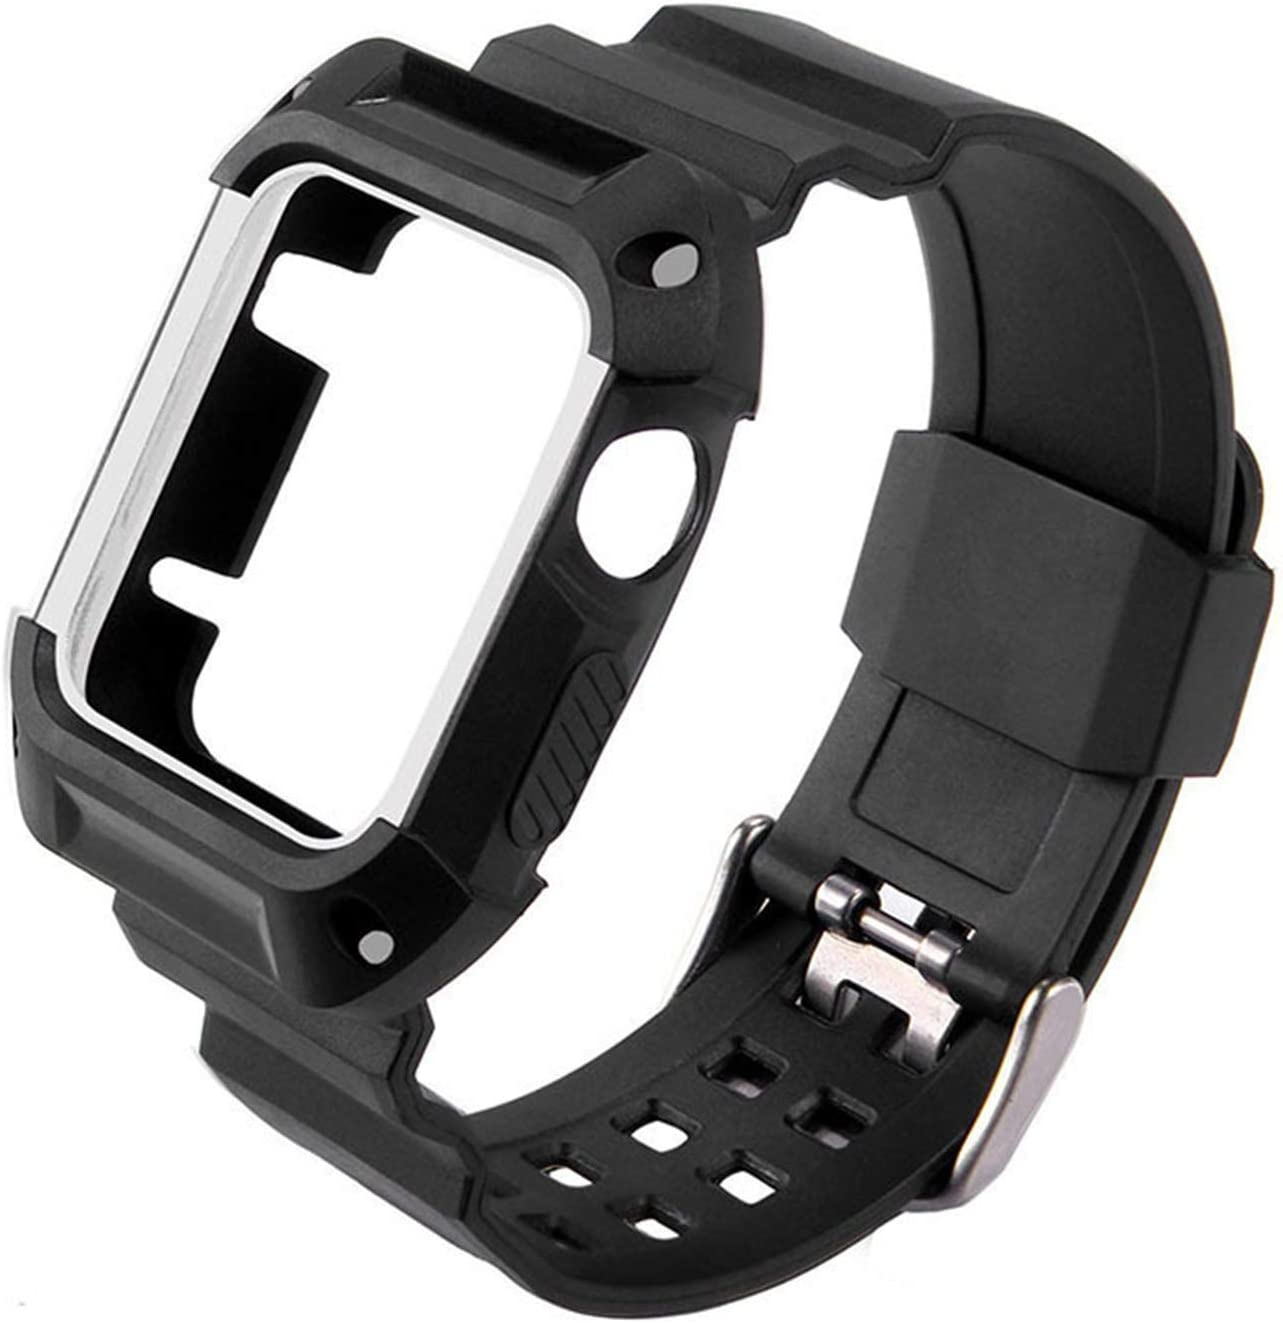 LJSKAFF TPU Rubber Watchband with Protective Case security Watch Free shipping / New for